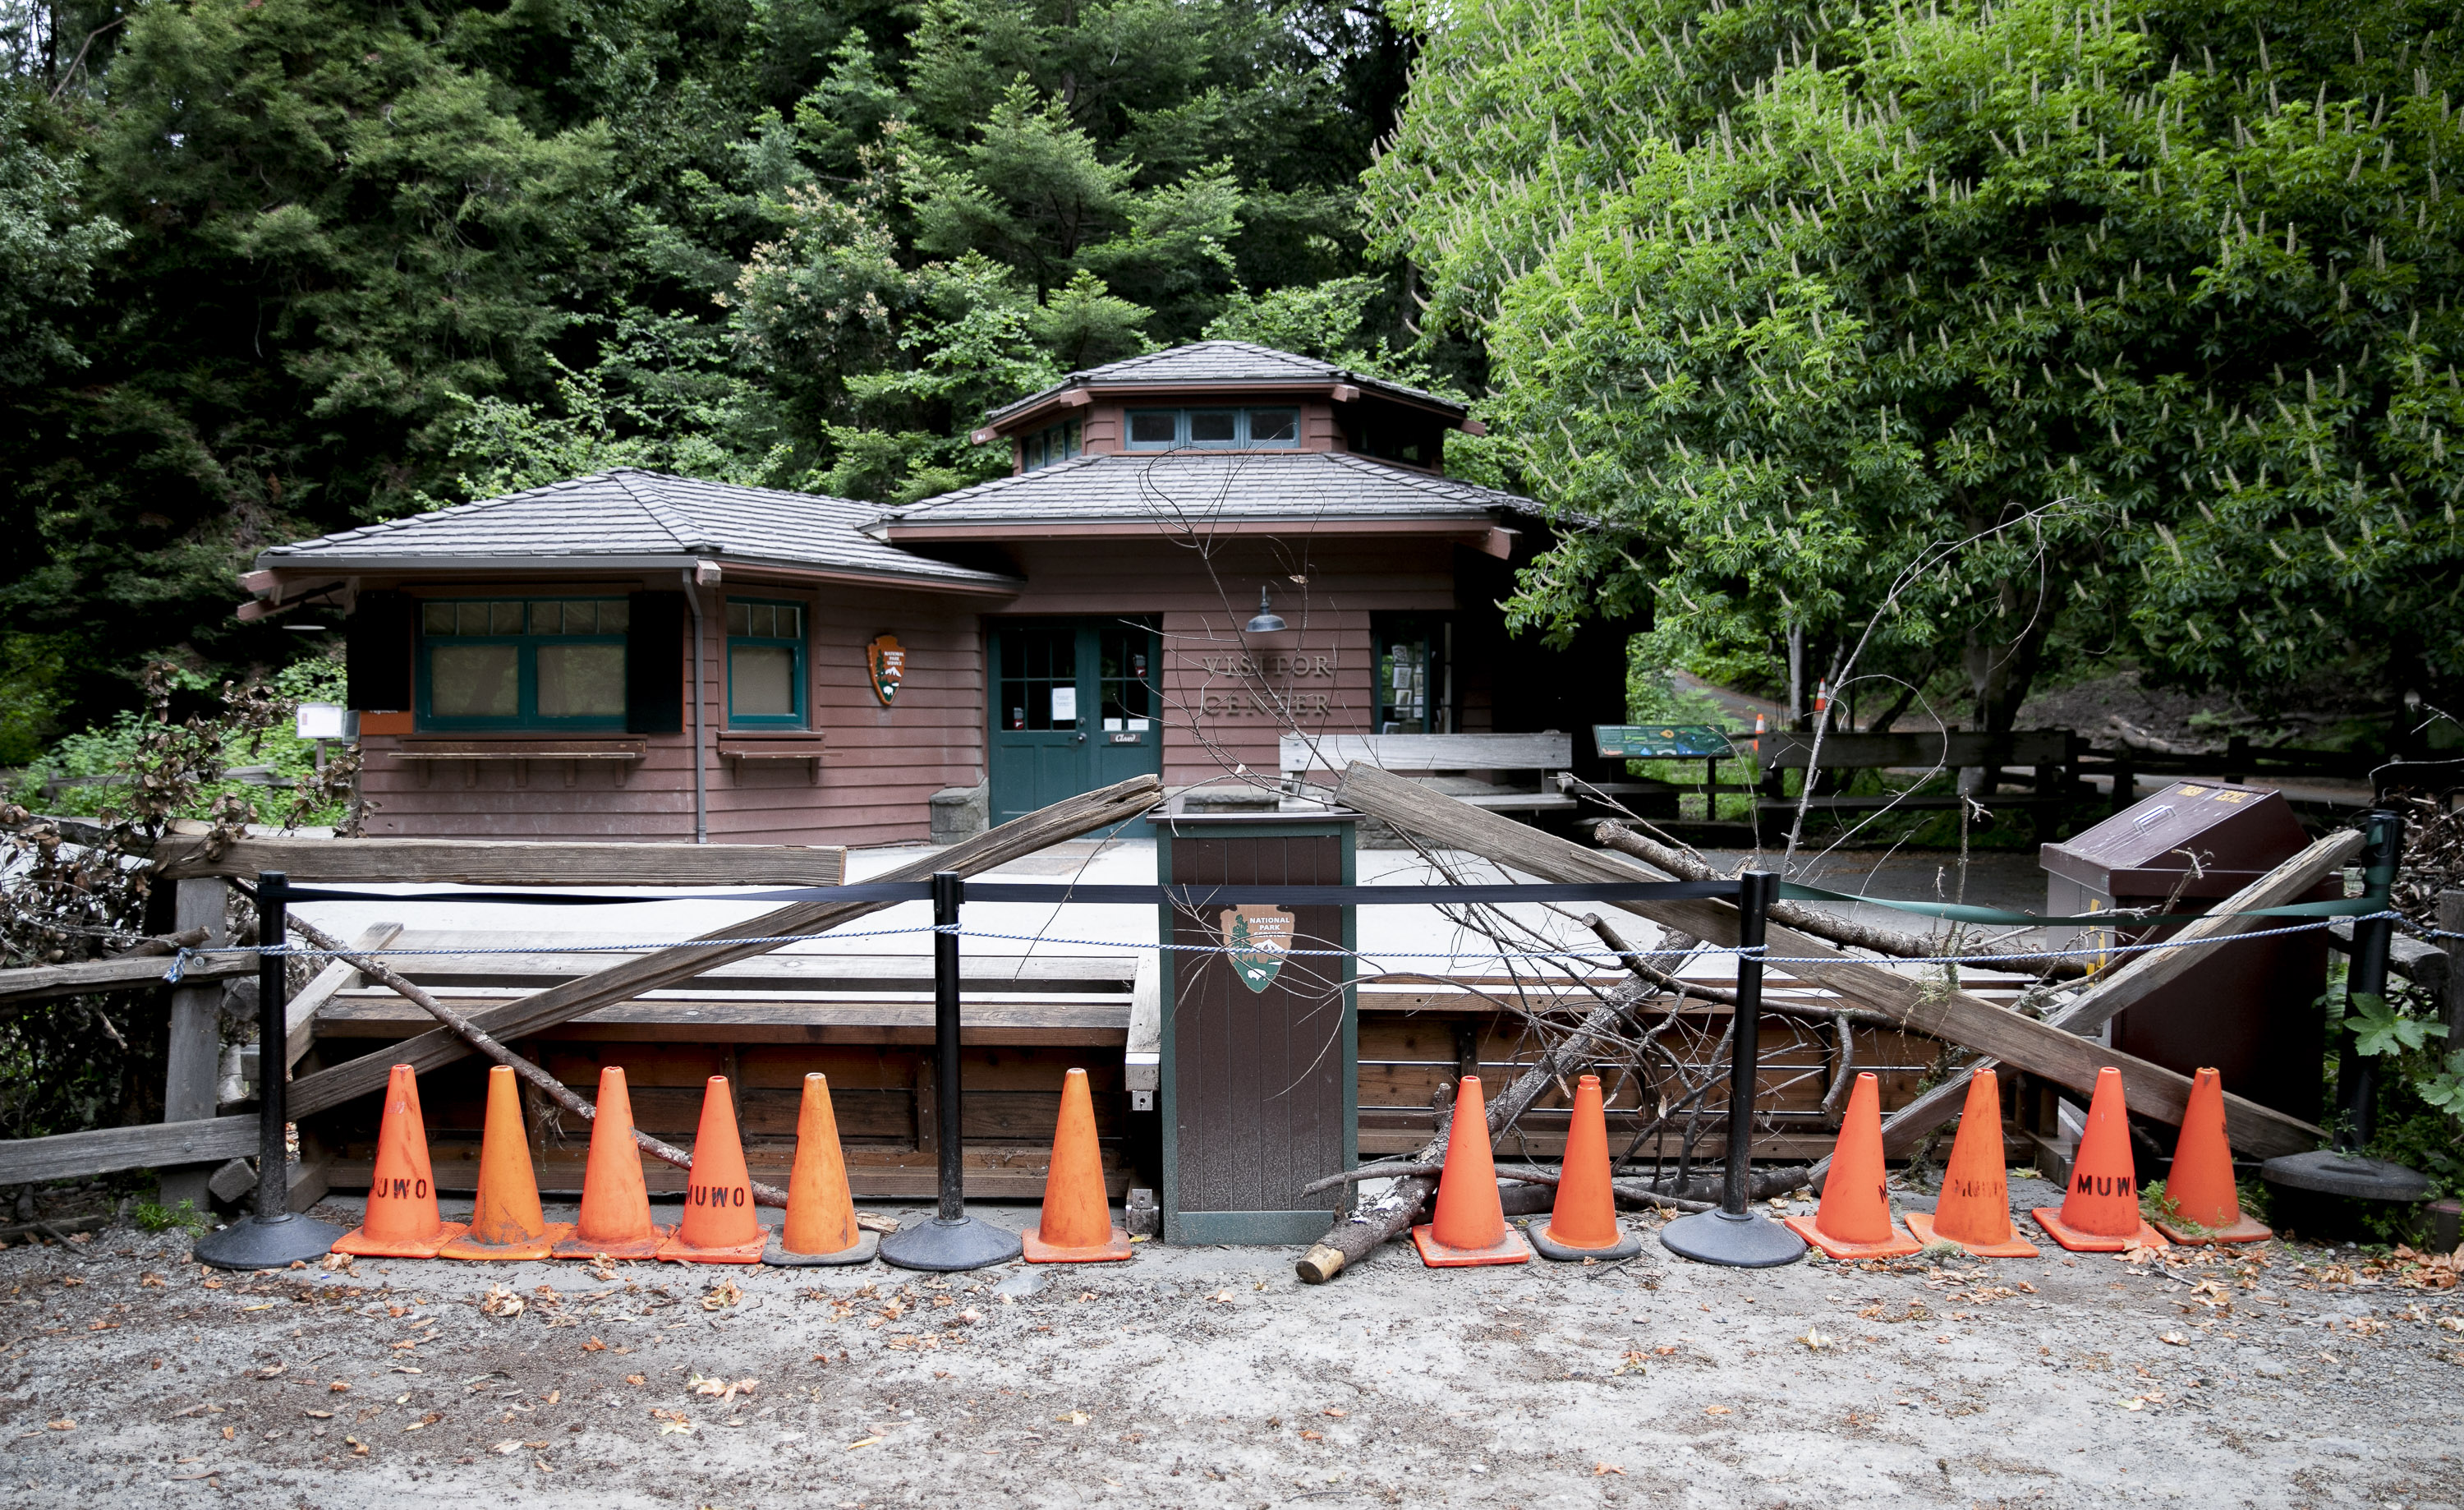 The entrance to Muir Woods National Monument is barricaded closed with a combination of sticks, cones and overturned benches on May 9, 2020. Photo by Anne Wernikoff for CalMatters